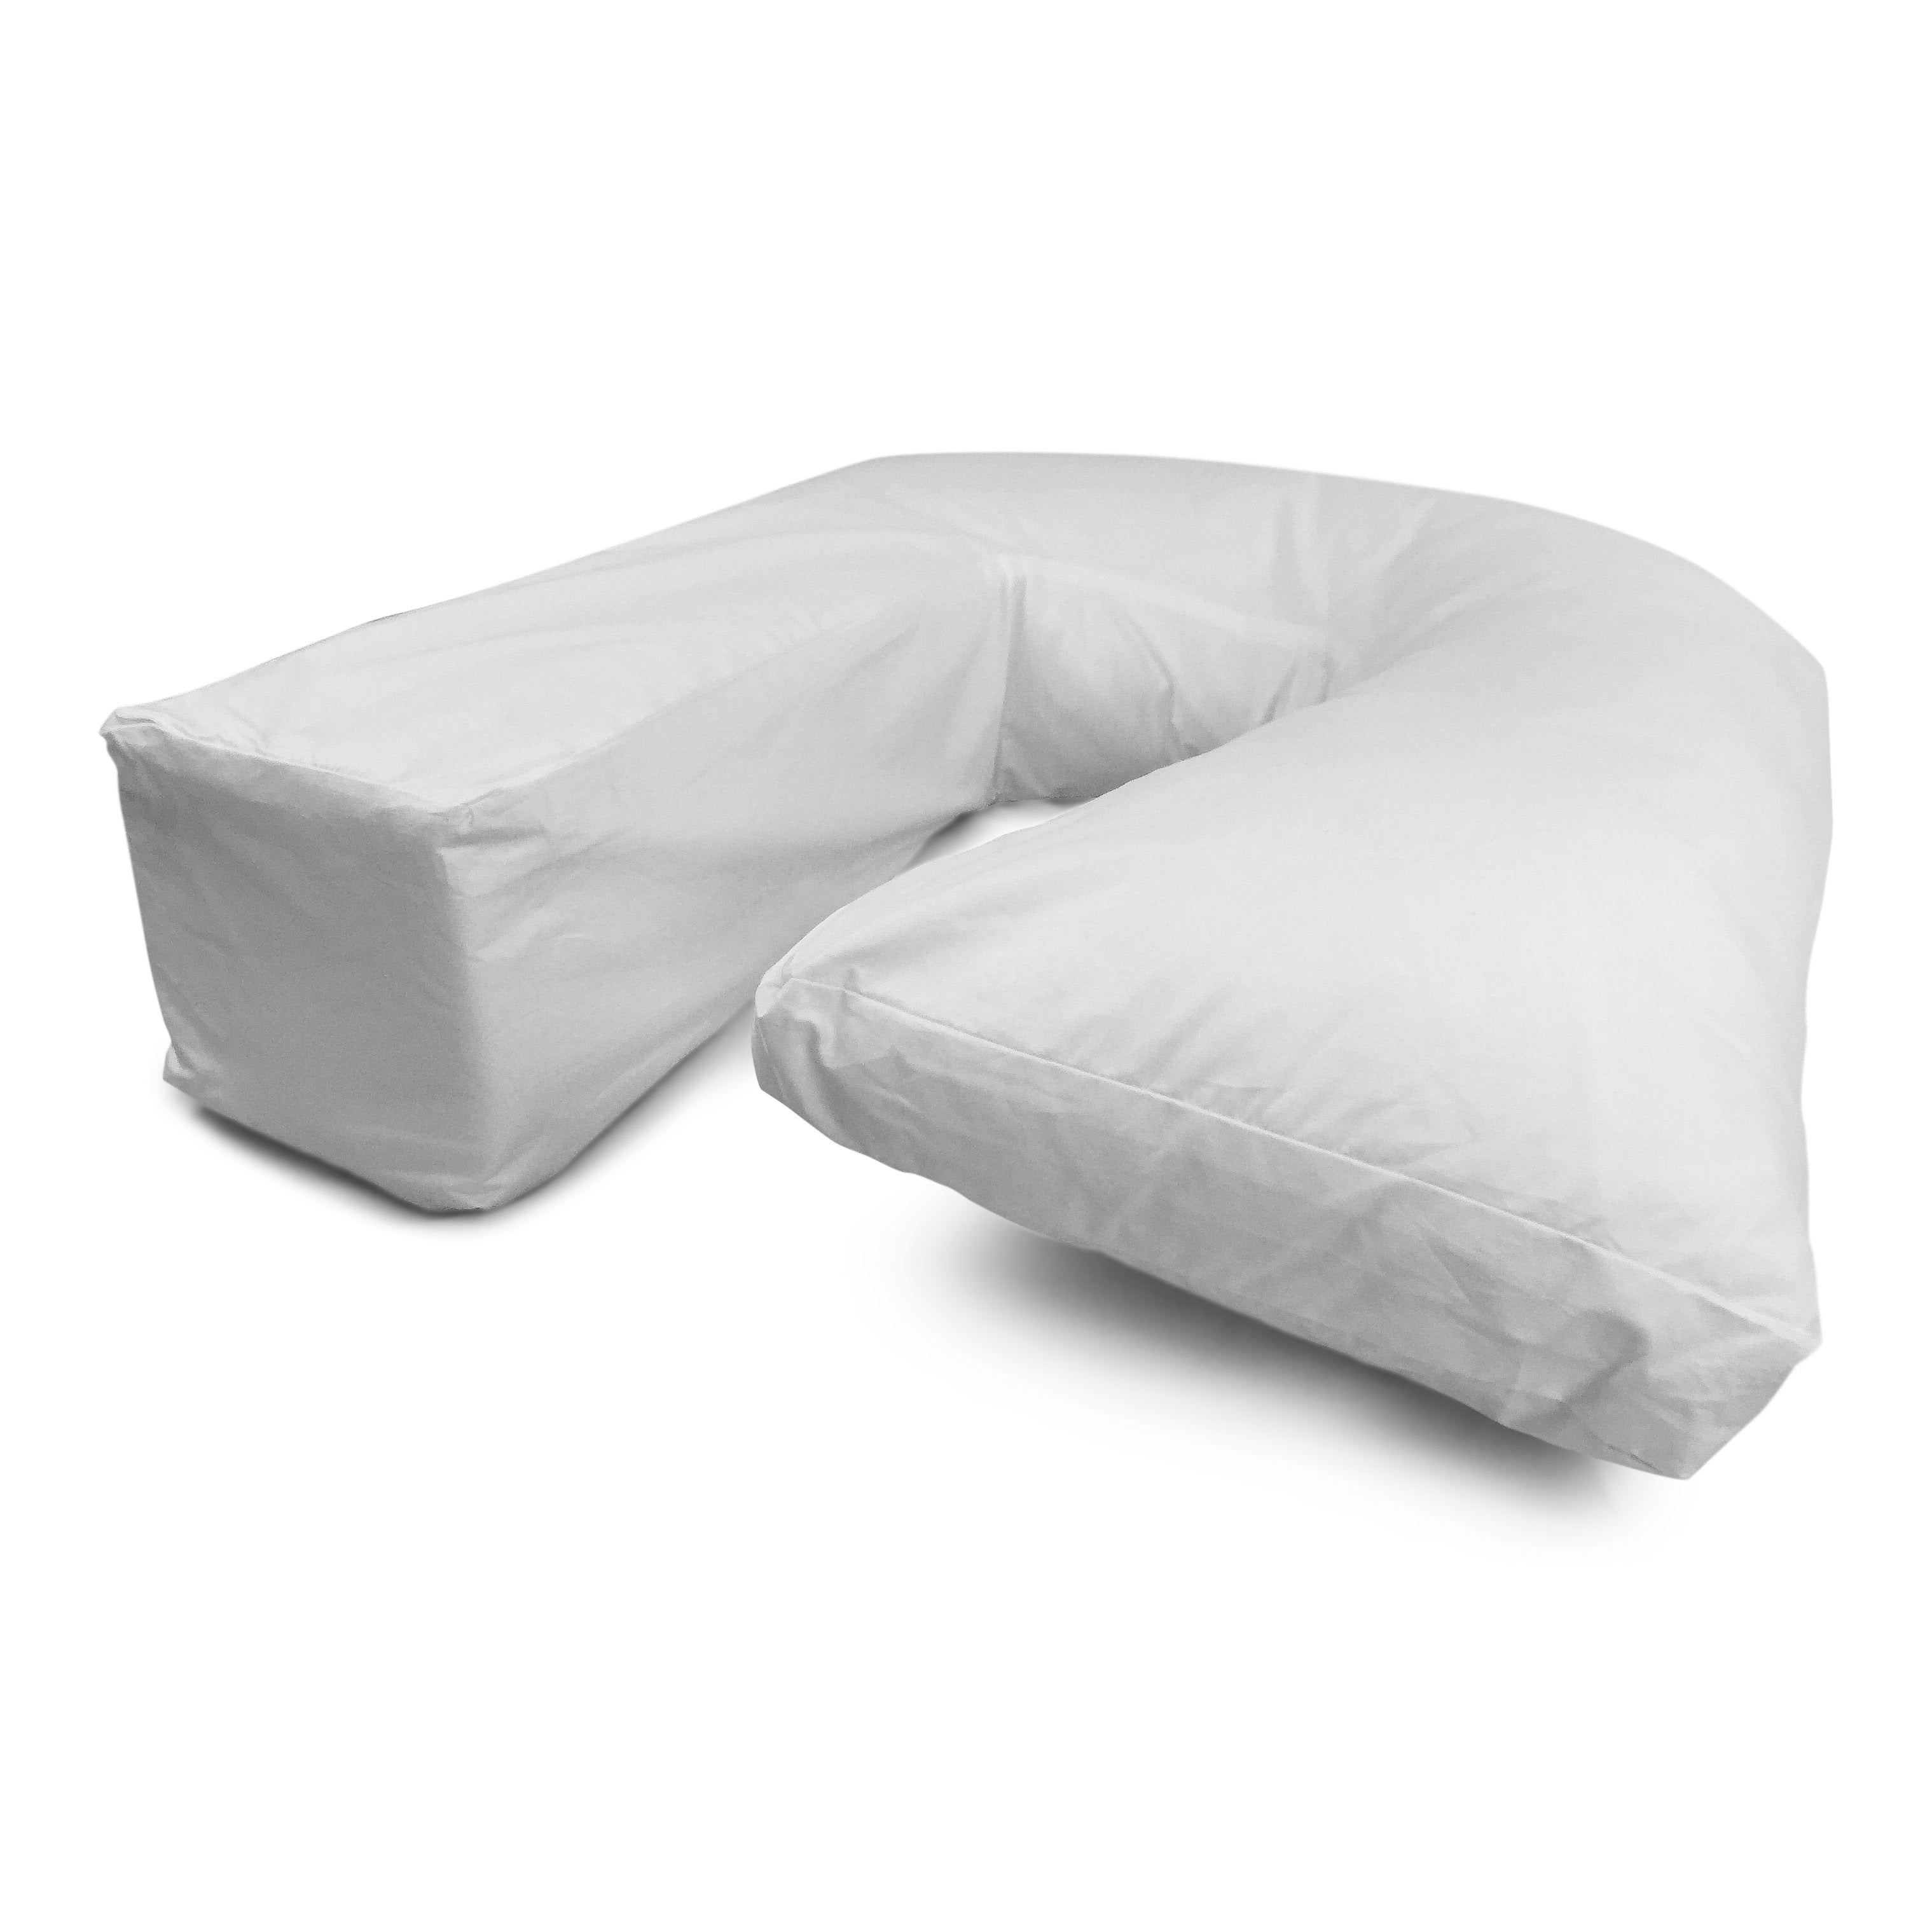 info willey king heirloom cushion telano snoring detail lock pillow architecture with set rc protectors mattresses mattress v anti furniture sales telanoinfo store top